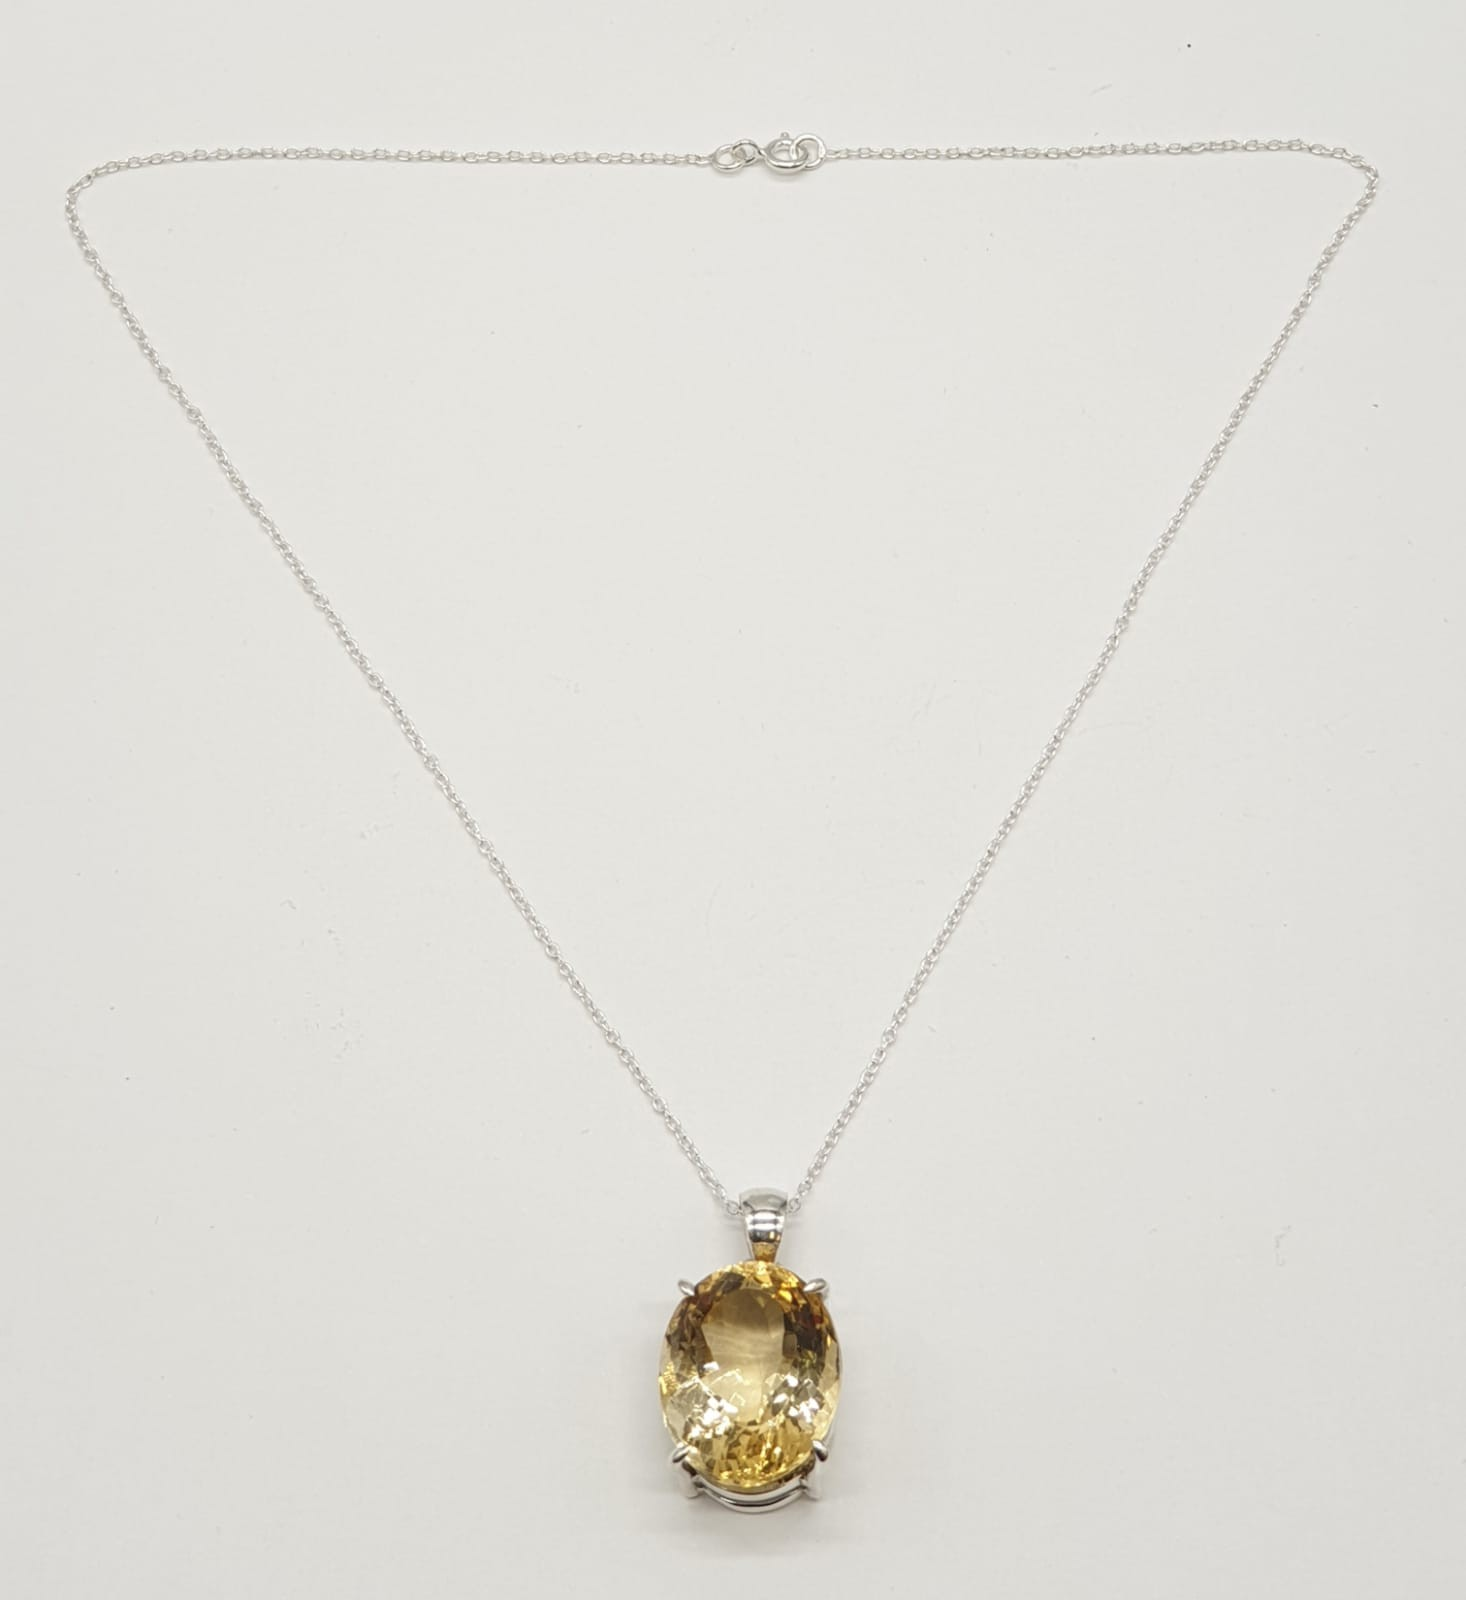 Citrine Gemstone Pendant set in Sterling Silver on a 40cm long silver chain, weight 10g approx and - Image 6 of 6